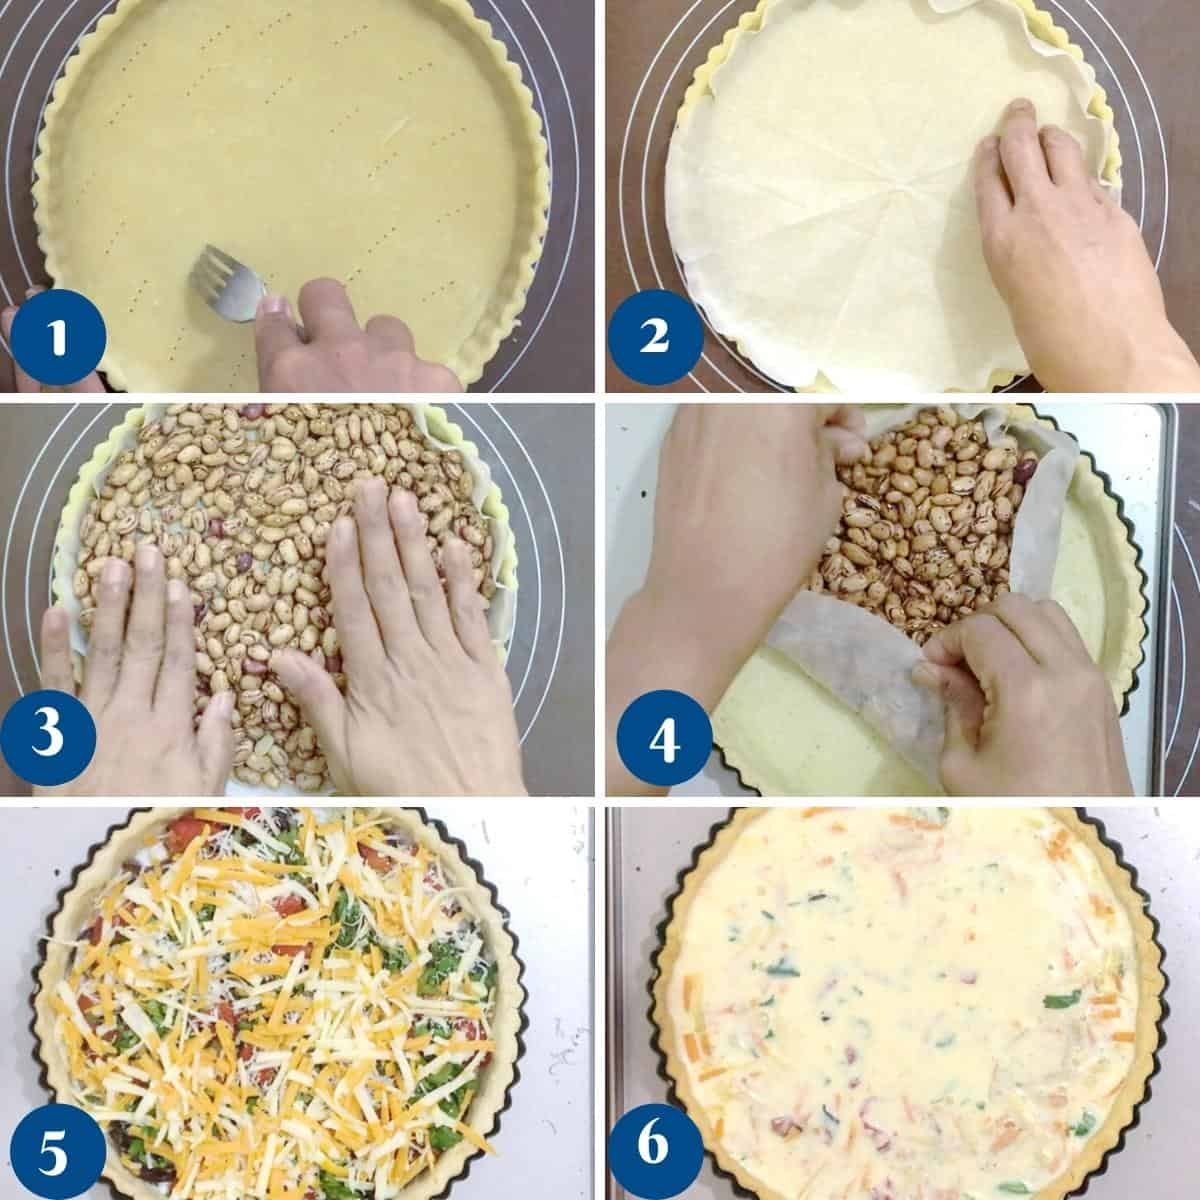 Progress pictures collage showing how to bake a quiche crust.